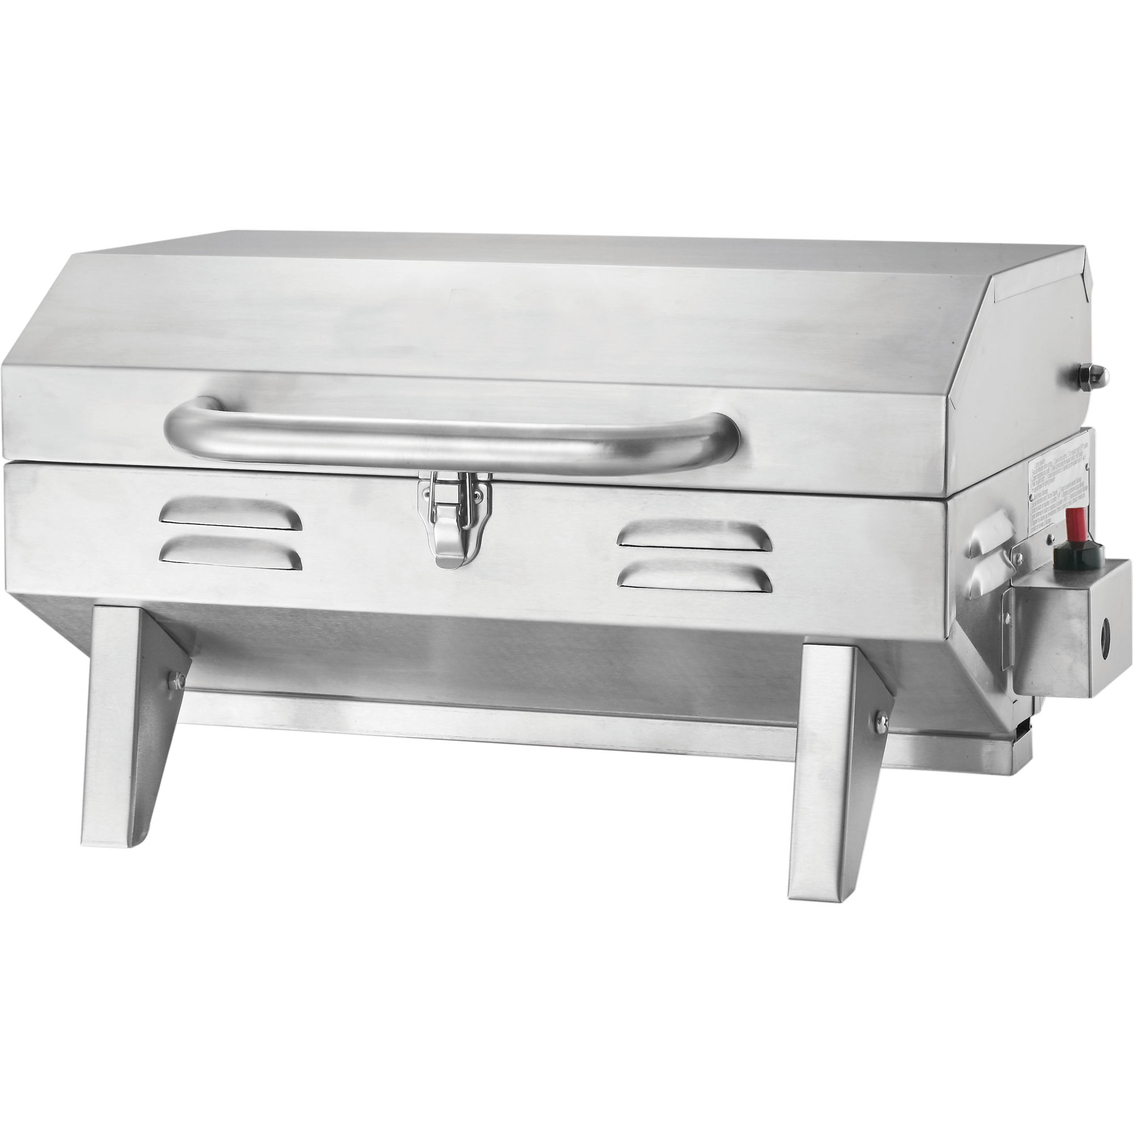 Beau RiverGrille Stainless Steel Tabletop LP Gas Grill